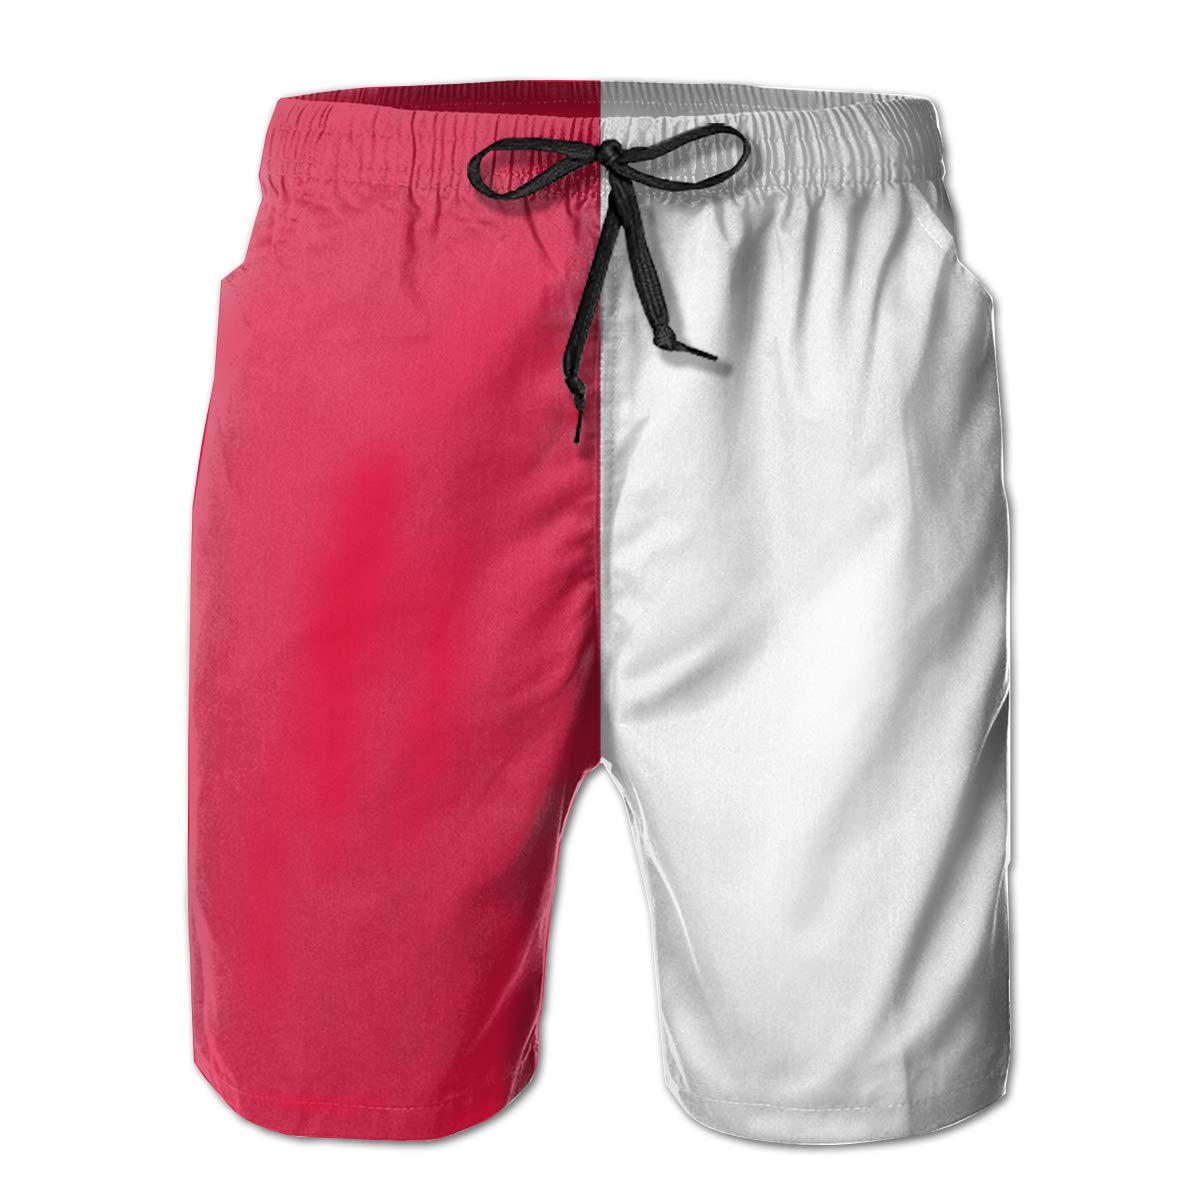 Casual Beach Shorts with Pockets Yt92Pl@00 Mens 100/% Polyester Poland Flag Swim Trunks